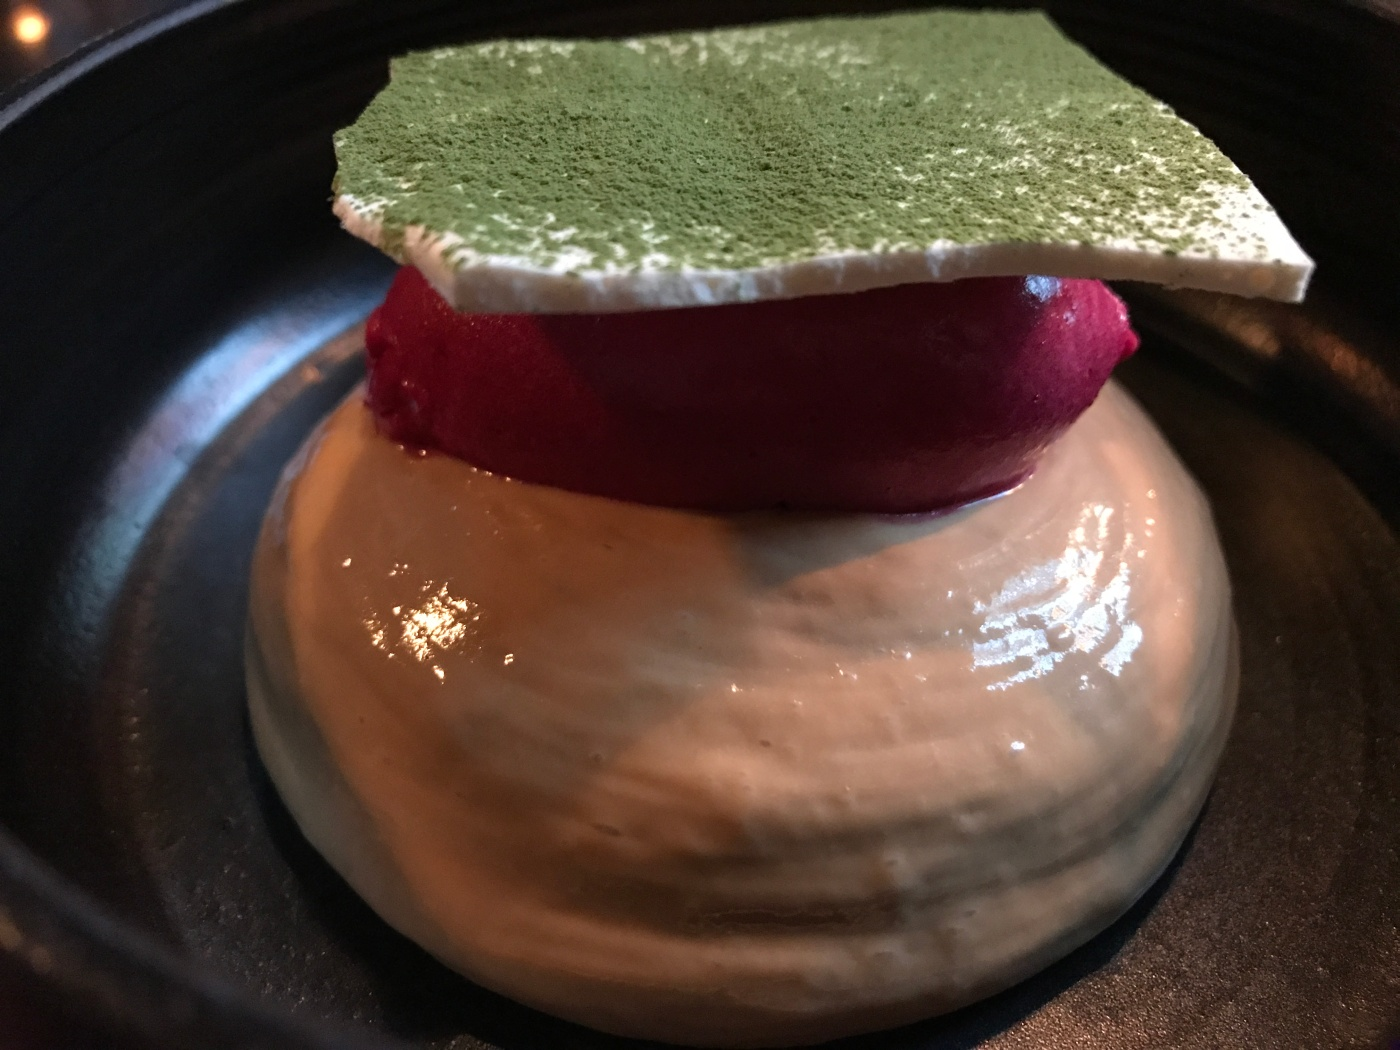 Dillicious - Brown Cheese, Beet and Meringue at Dill Restaurant in Reykjavík, Iceland